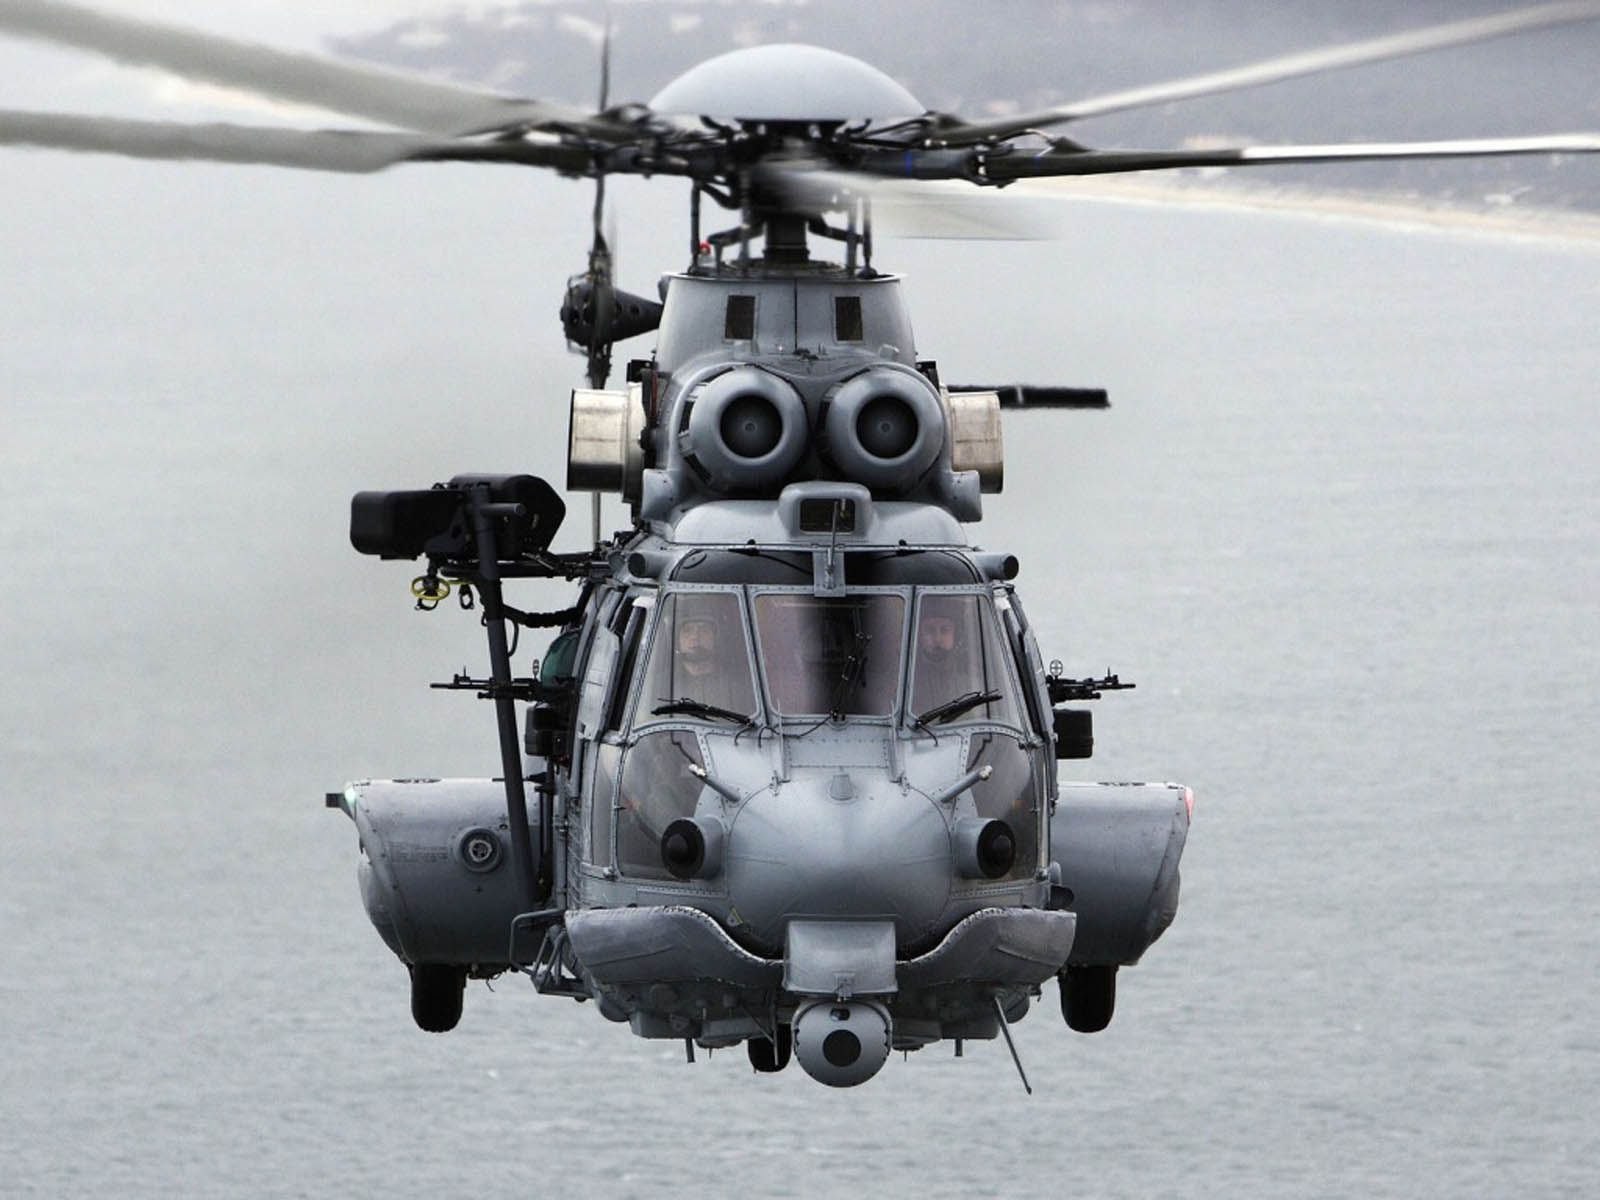 1600x1200 wallpaper: Military Helicopter Wallpapers